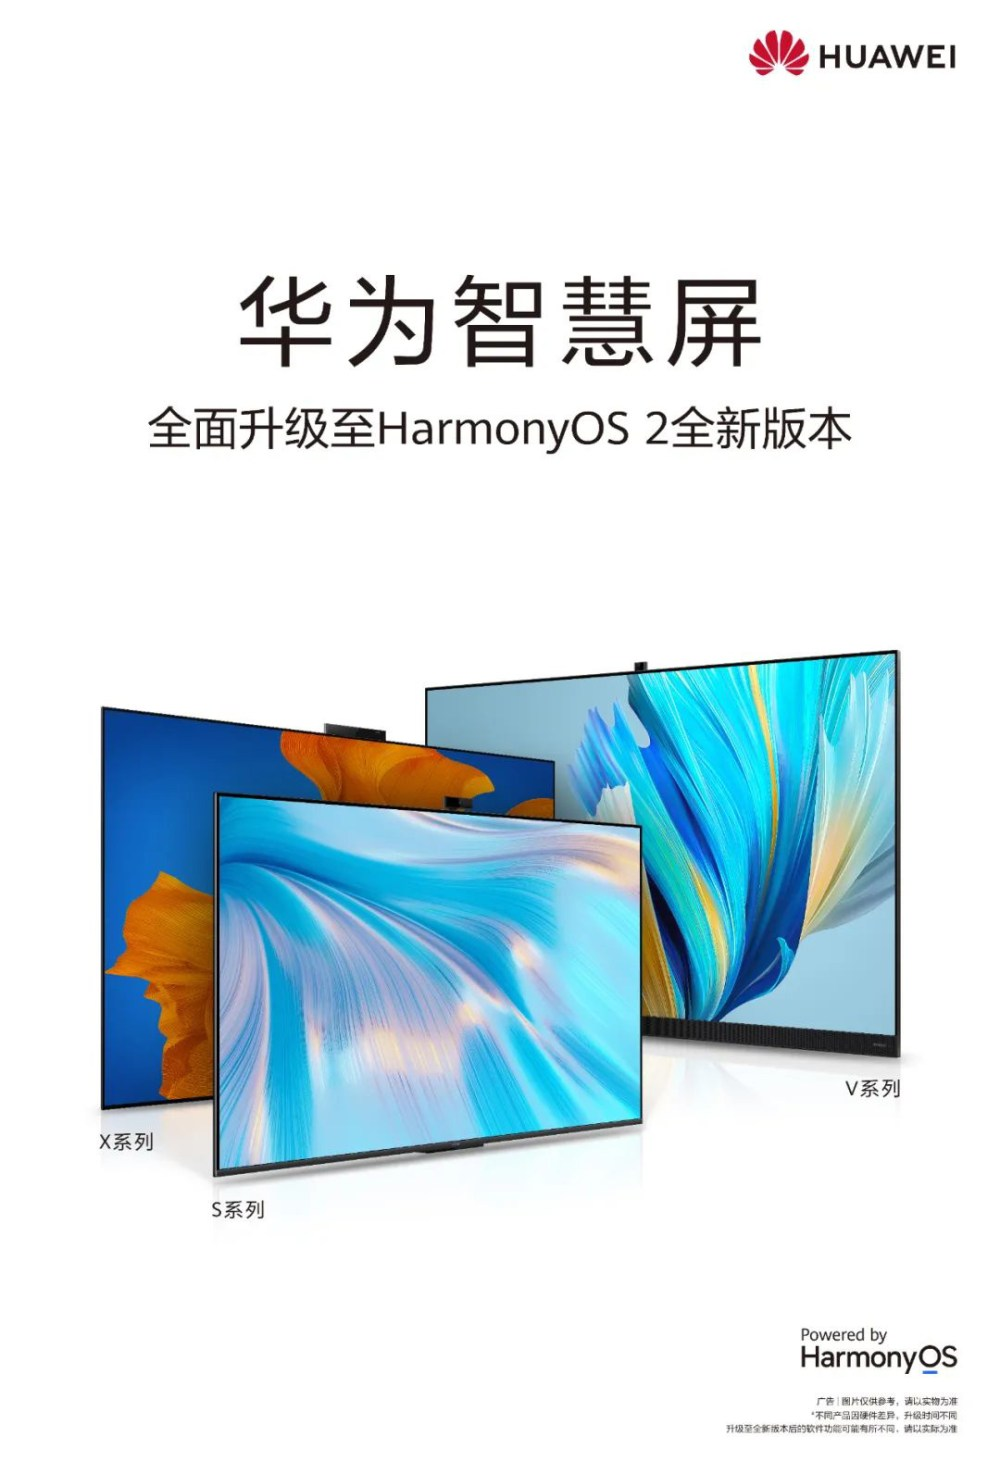 Huawei Smart Screen now fully upgraded to HarmonyOS 2